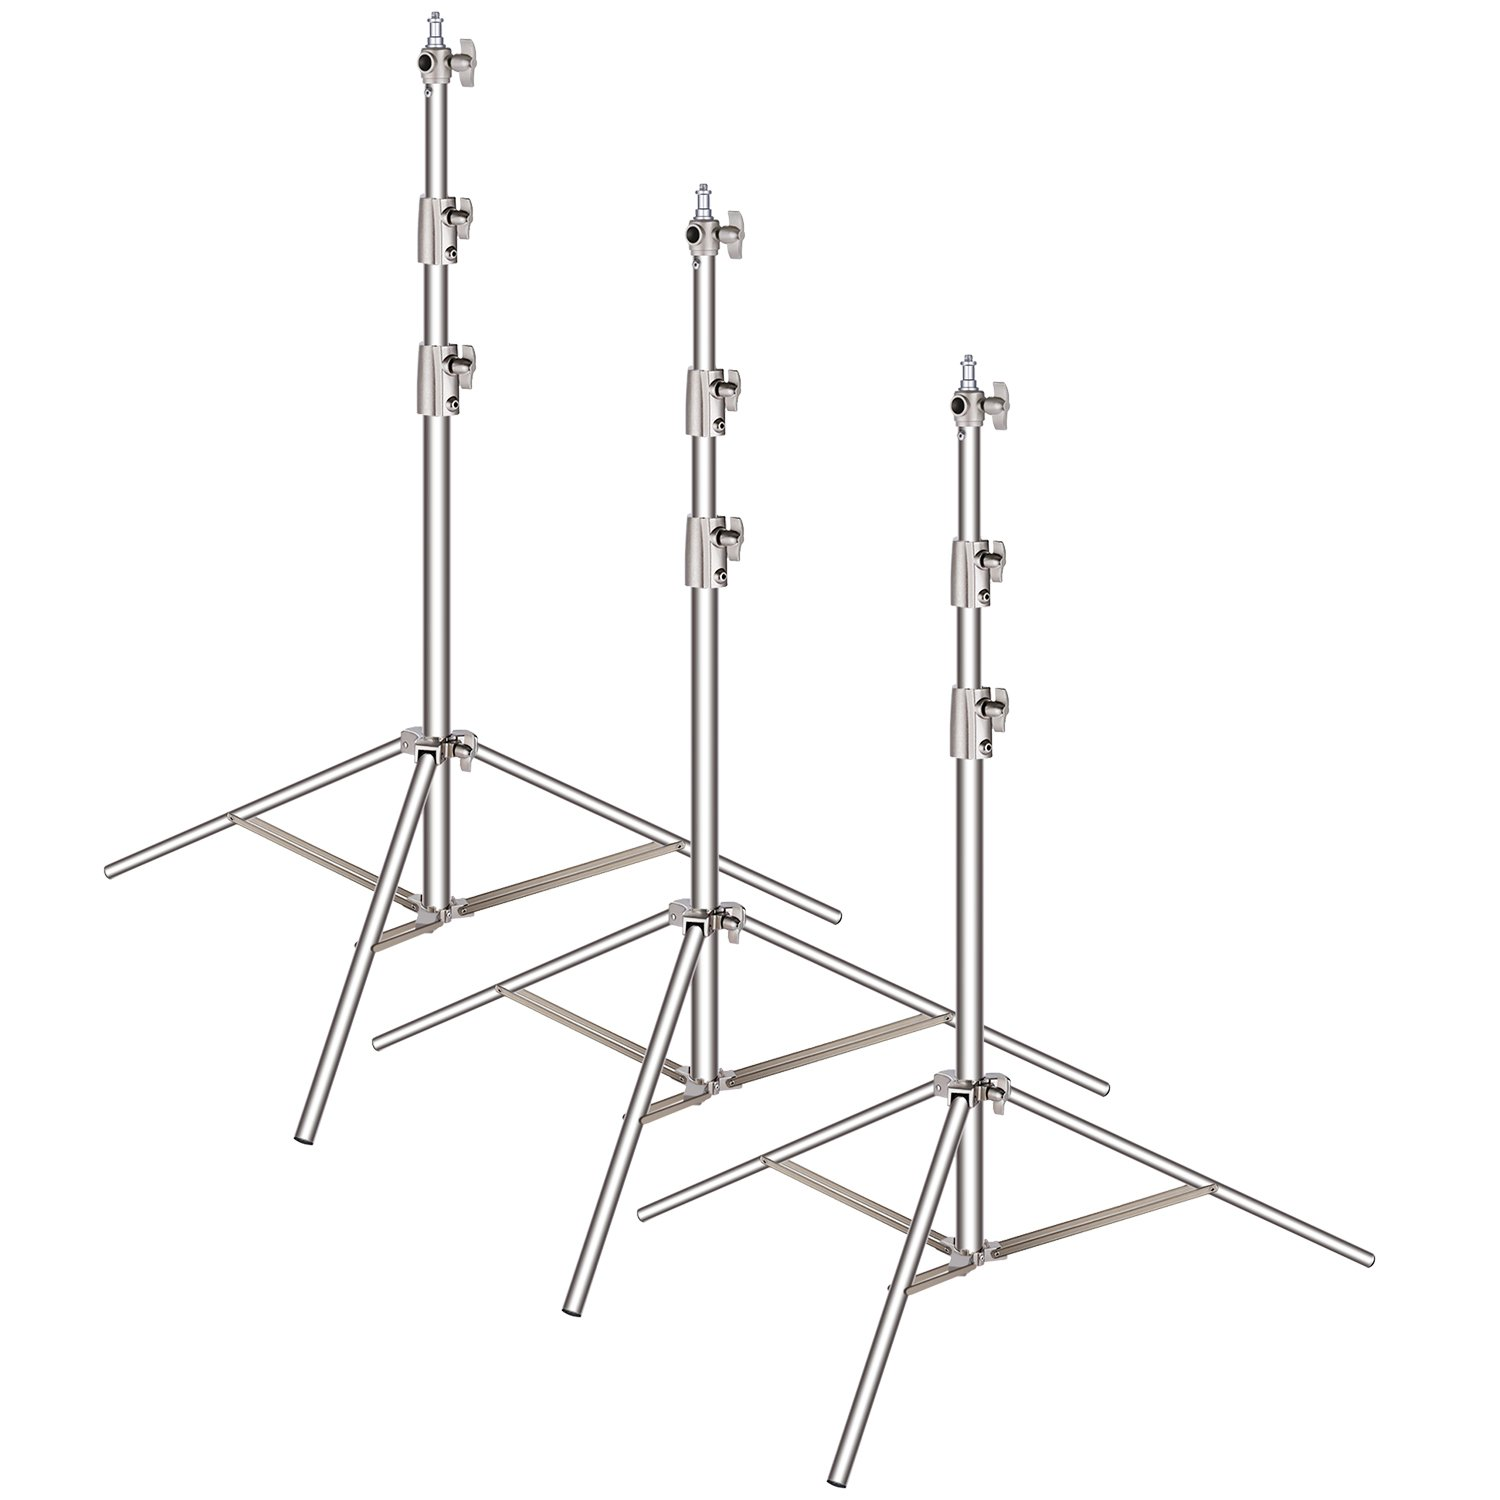 Neewer 3-pack Stainless Steel Light Stand with 1/4-inch to 3/8-inch Universal Adapter 39-102 inches/99-260 centimeters Foldable Support Stand for Studio Softbox,Umbrella,Strobe Light,Reflector,etc